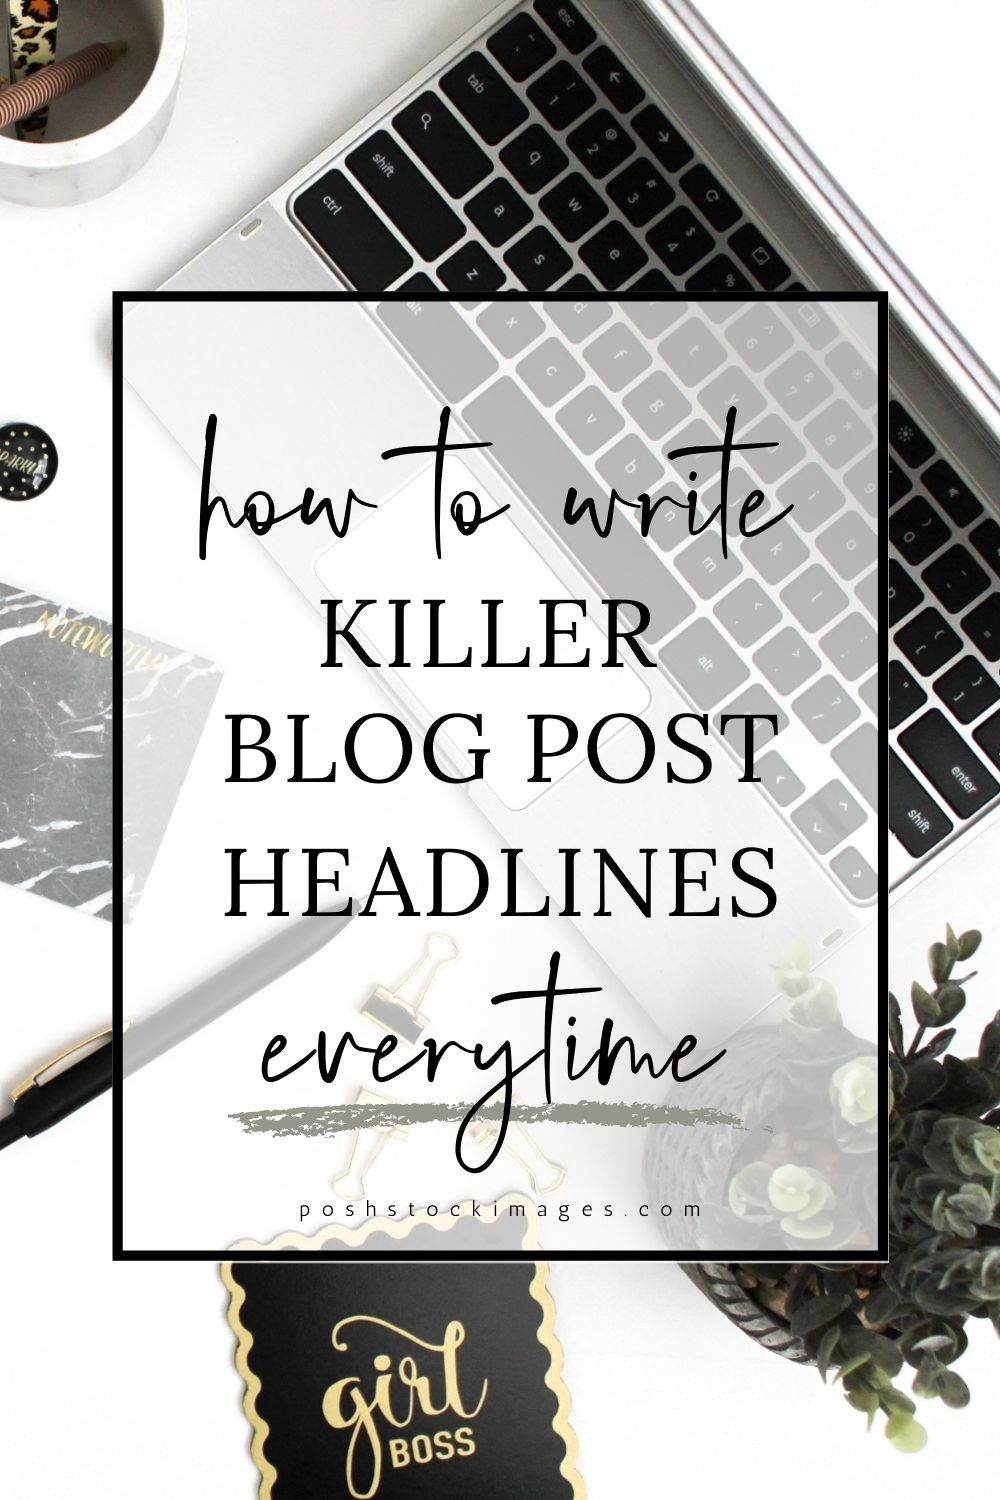 How the MonsterInsights tool will help you write killer blog post headlines every time! #bloggingtips #blogpostheadlines #headlines #monsterinsights